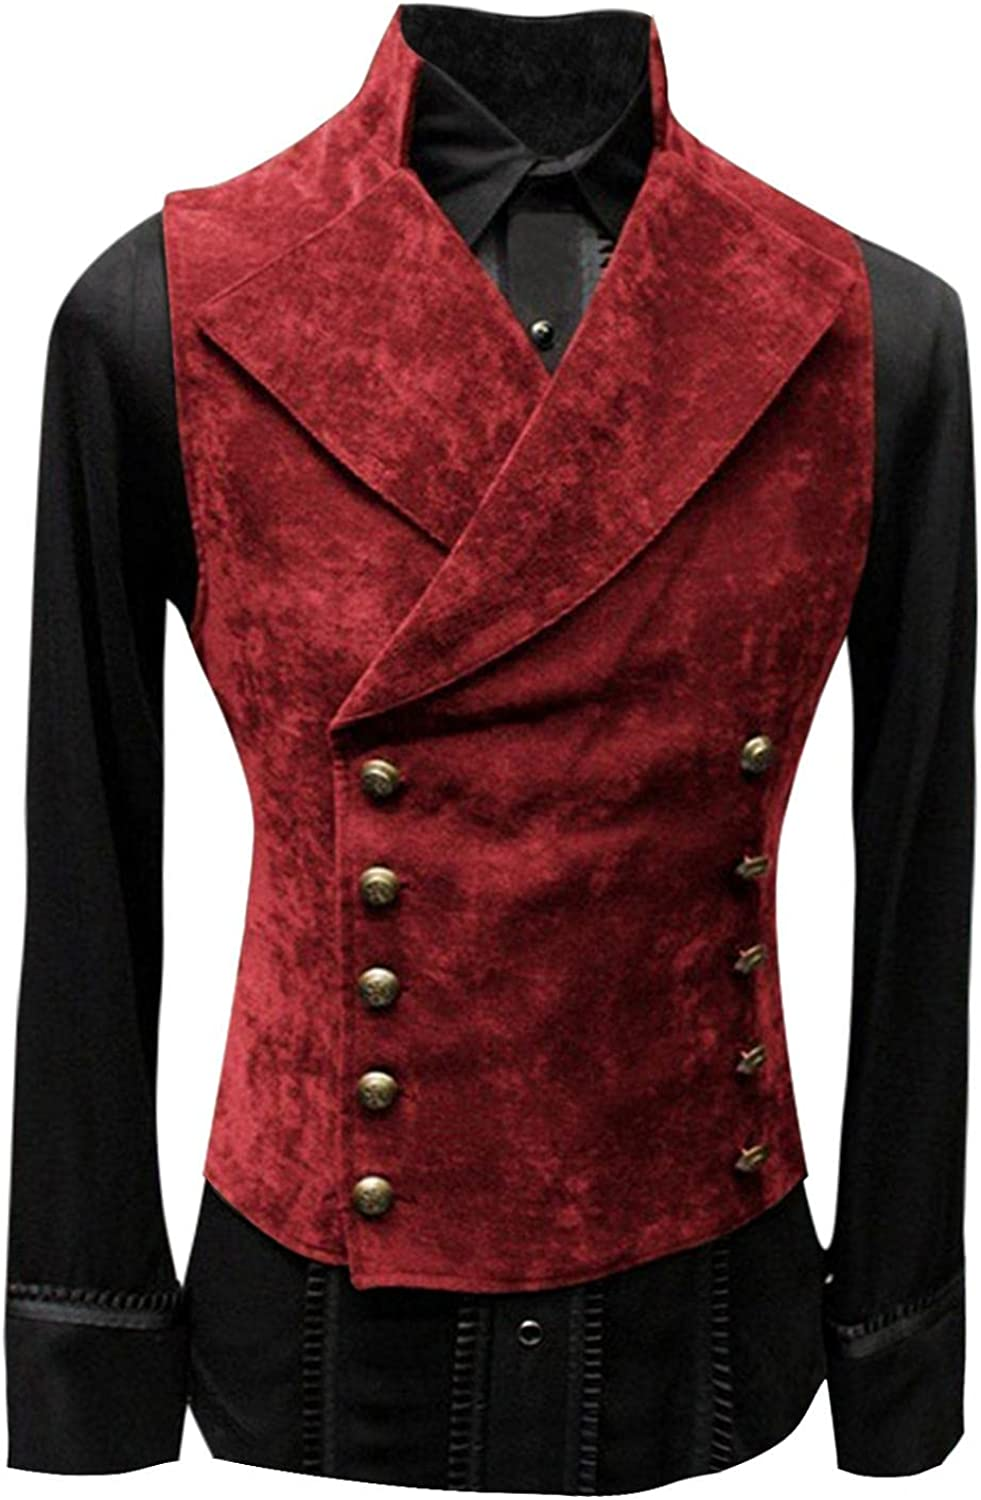 Men's Evening Dress Super Special SALE held Retro Leather Limited price Vest Jacket Stand- Long Sleeve